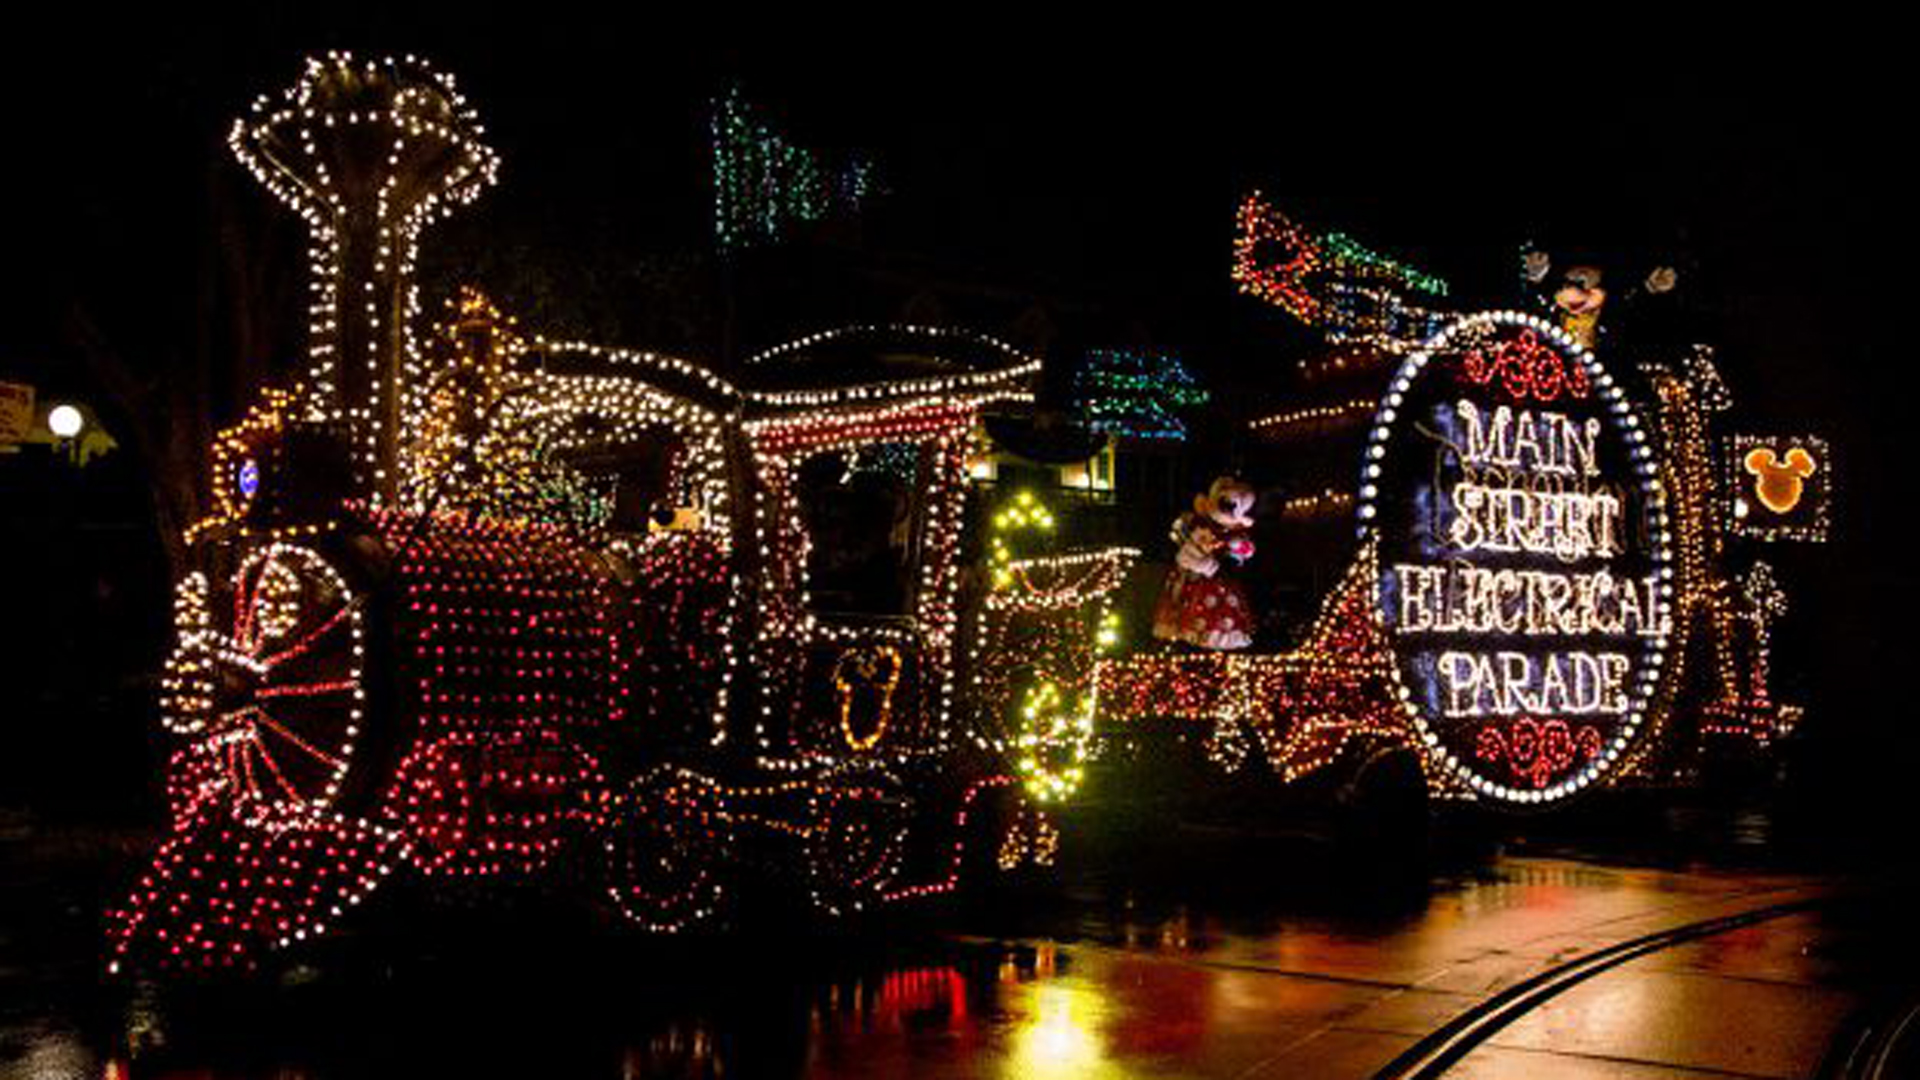 This file photo of a float from the Main Street Electrical Parade was released by Disney on June 28, 2019.